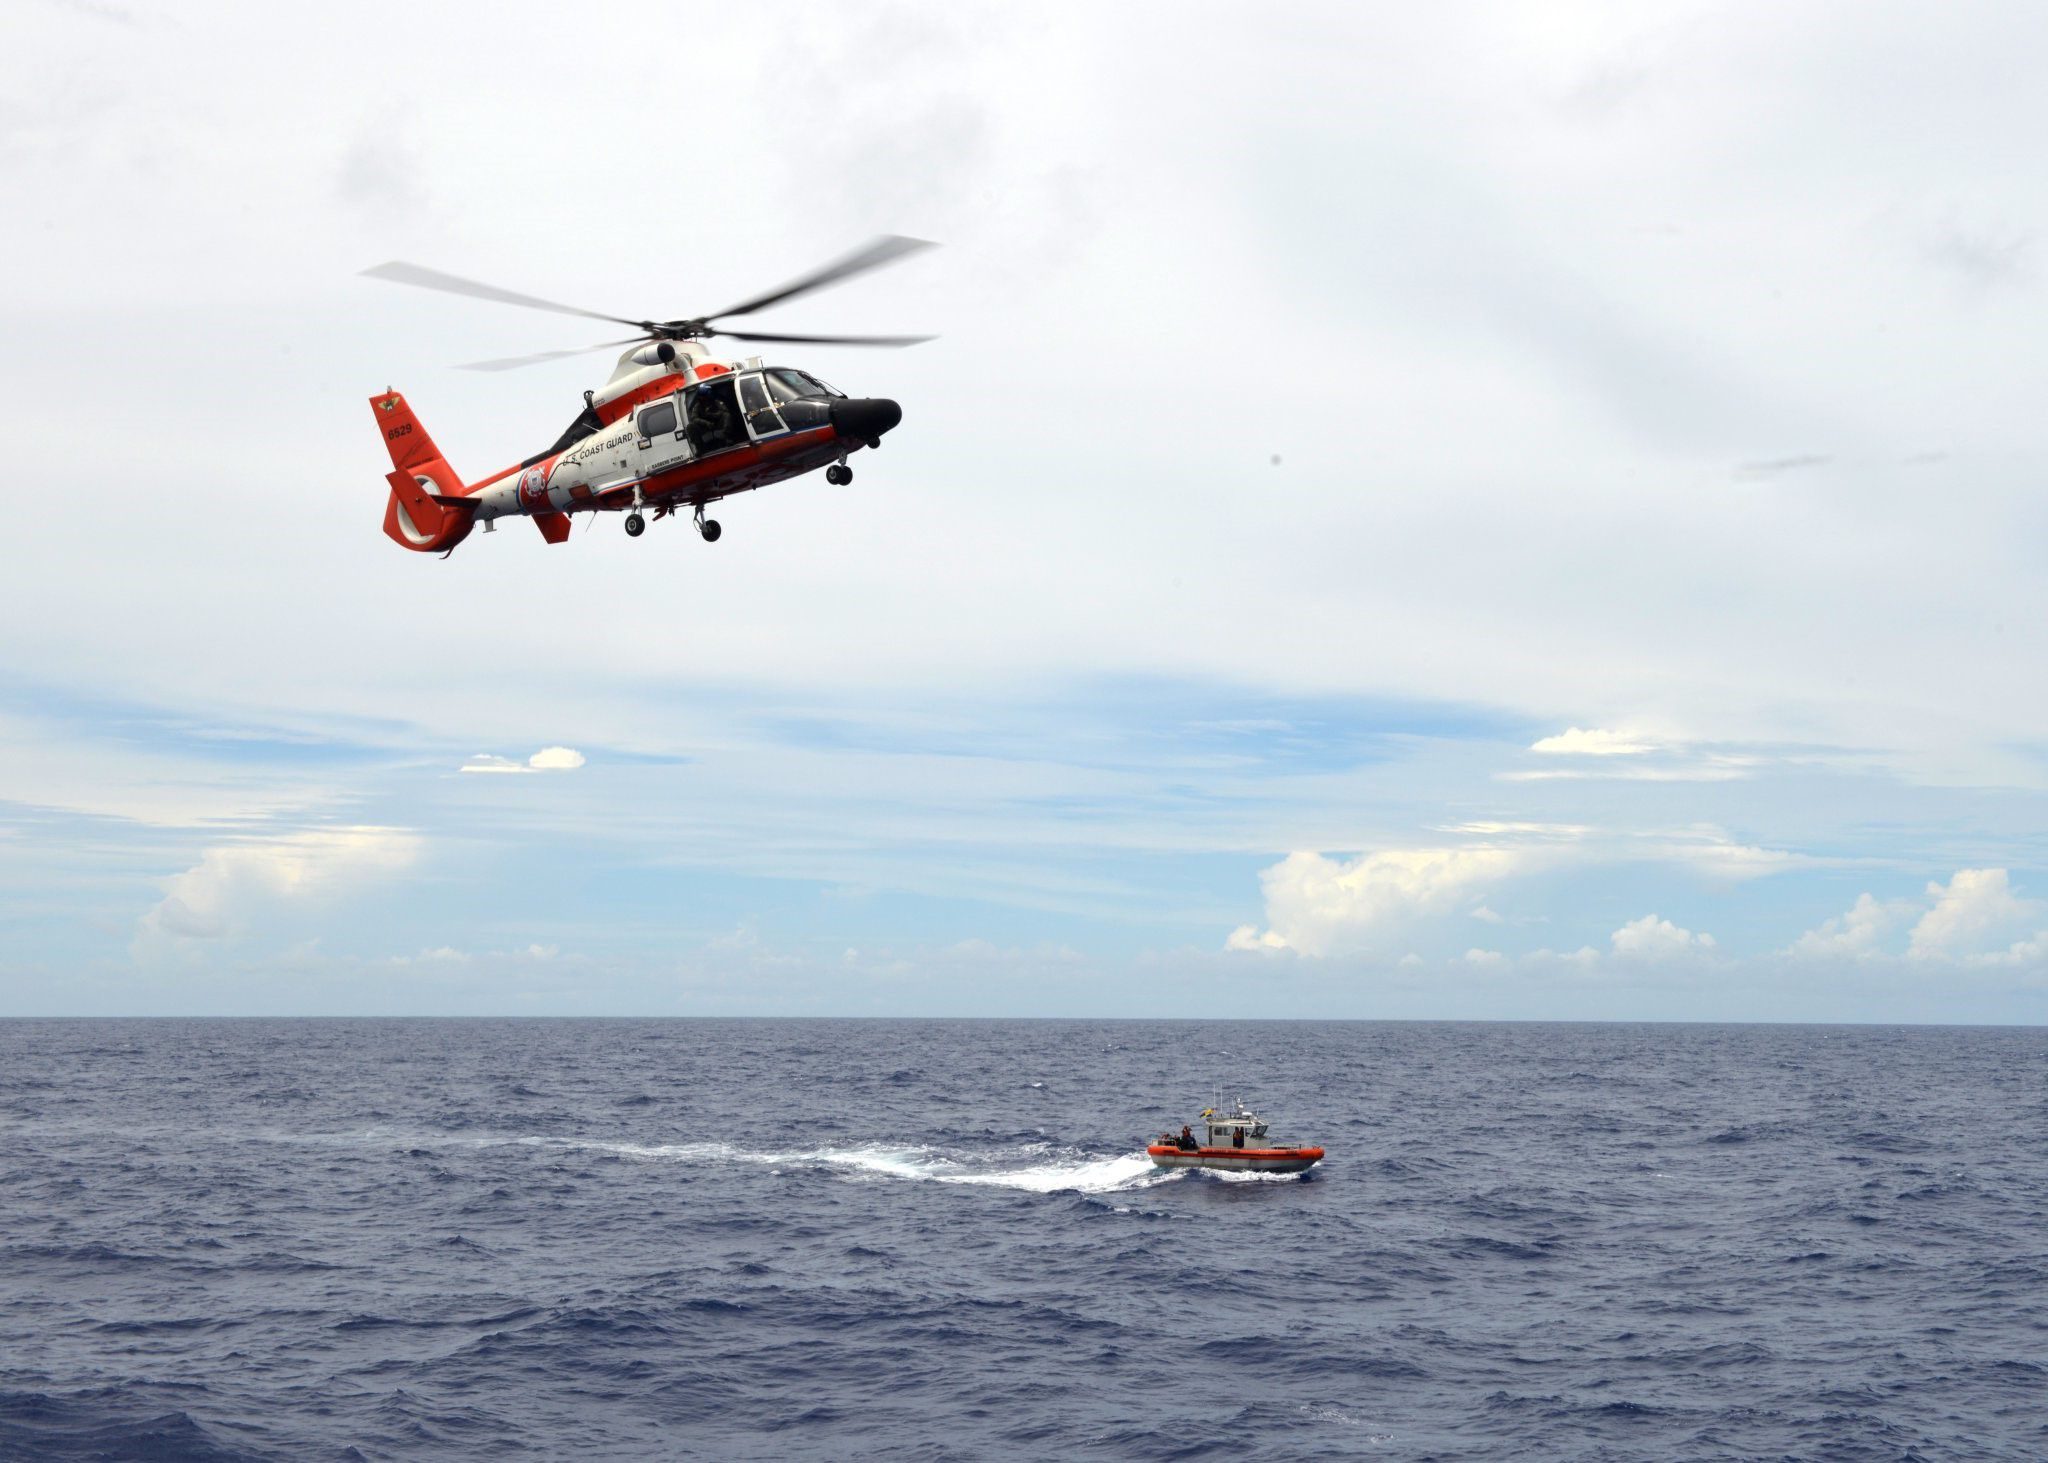 Coast Guard continues search throughout night for 2 people